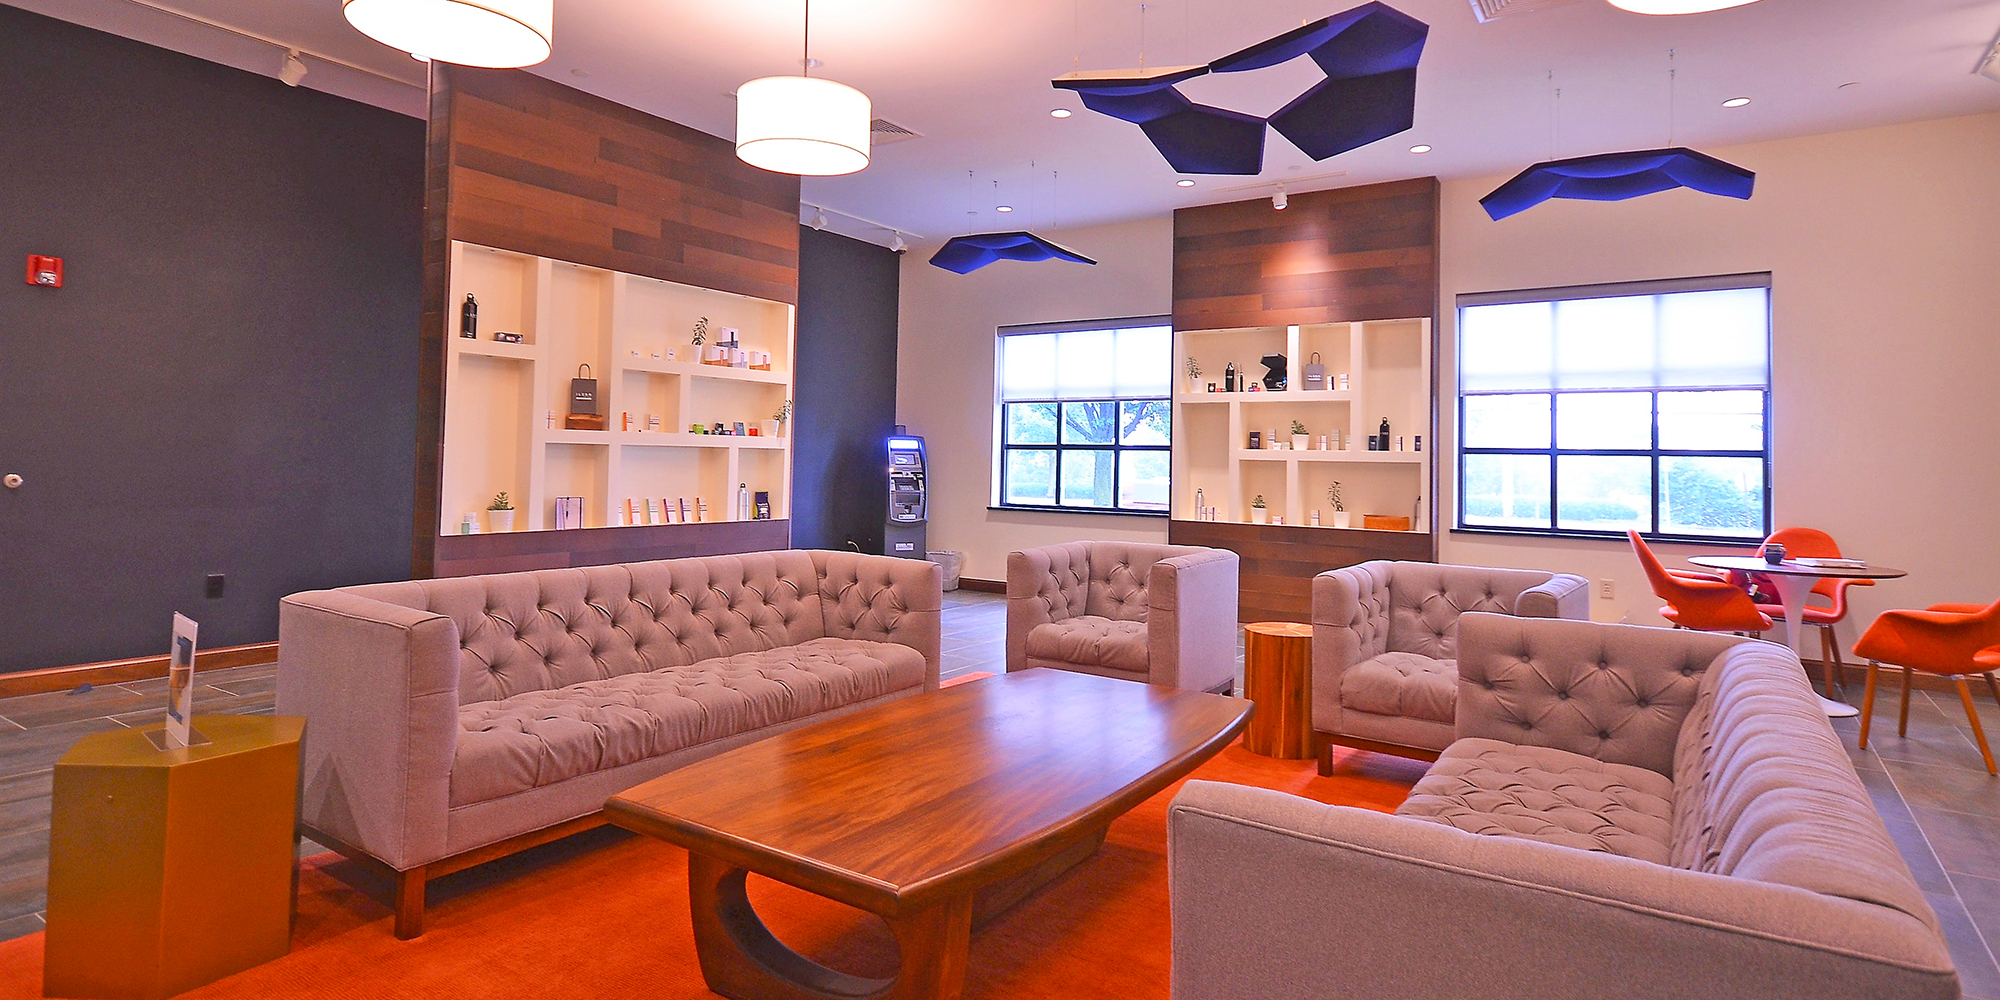 PROJECTS-5-ILERA-HEALTHCARE-DISPENSARY-PLYMOUTH-MEETING